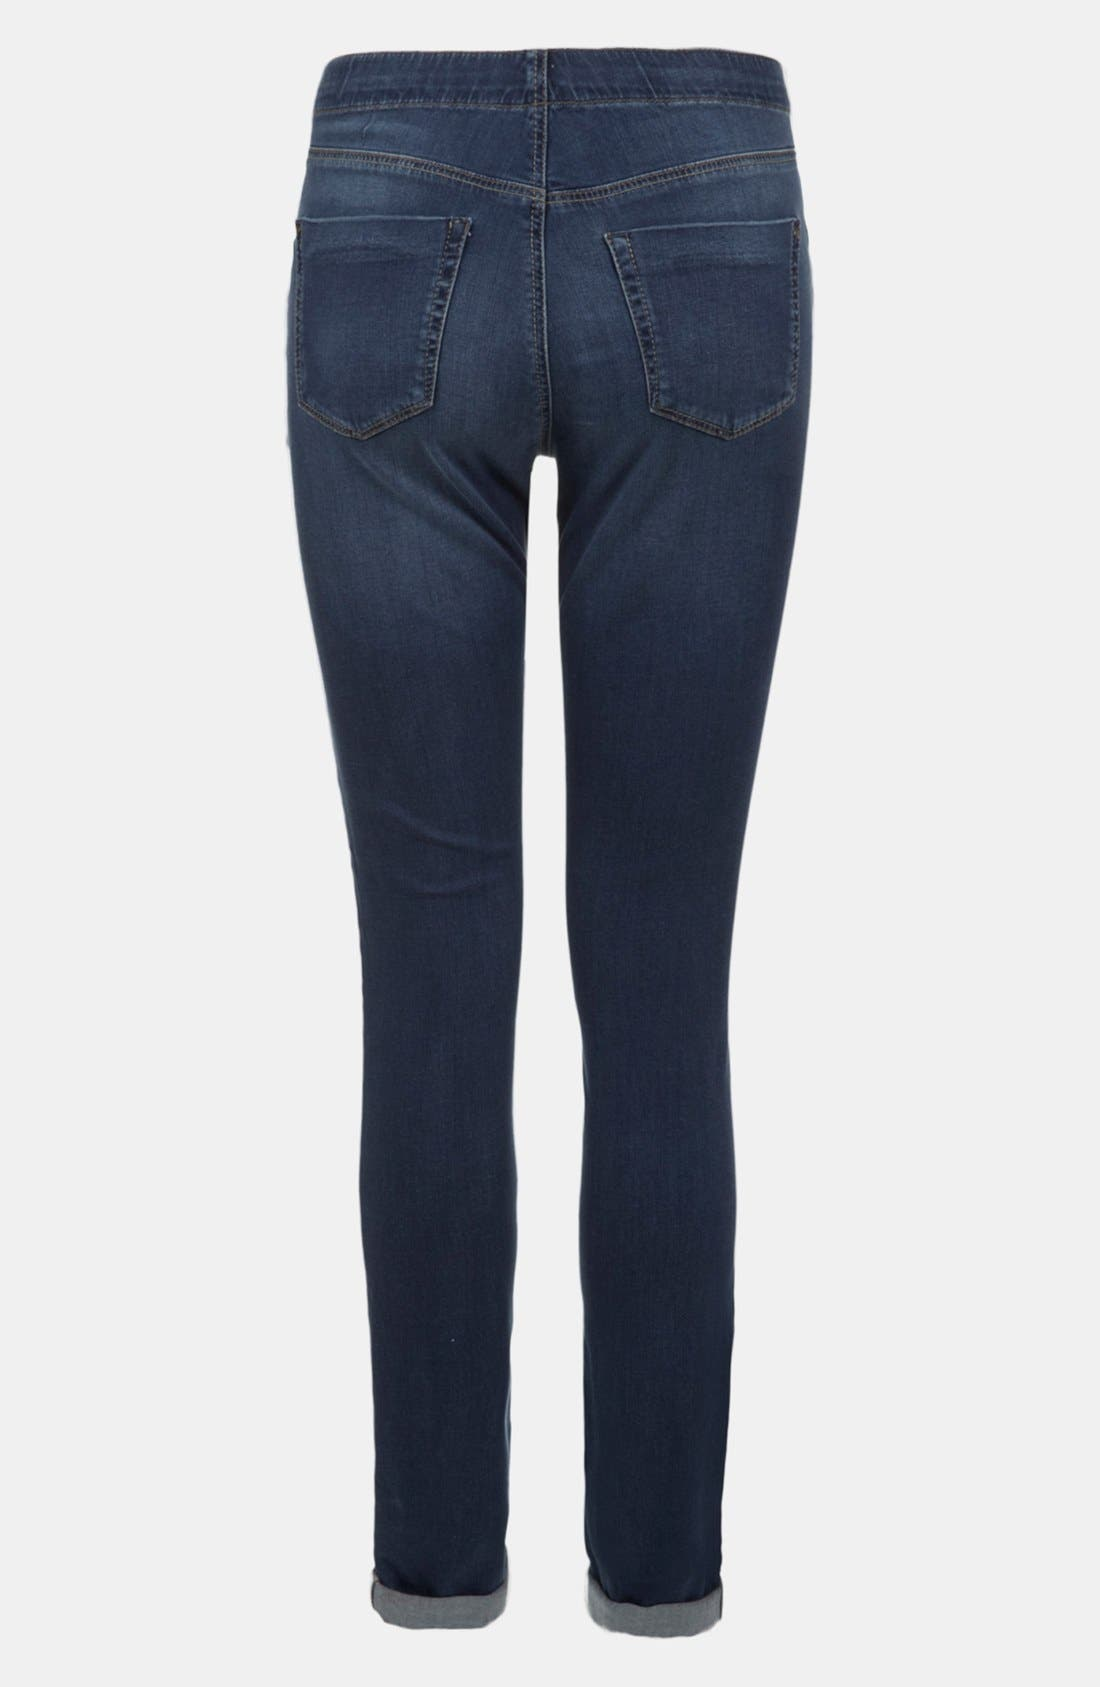 TOPSHOP, 'Leigh' Maternity Jeans, Alternate thumbnail 2, color, 420